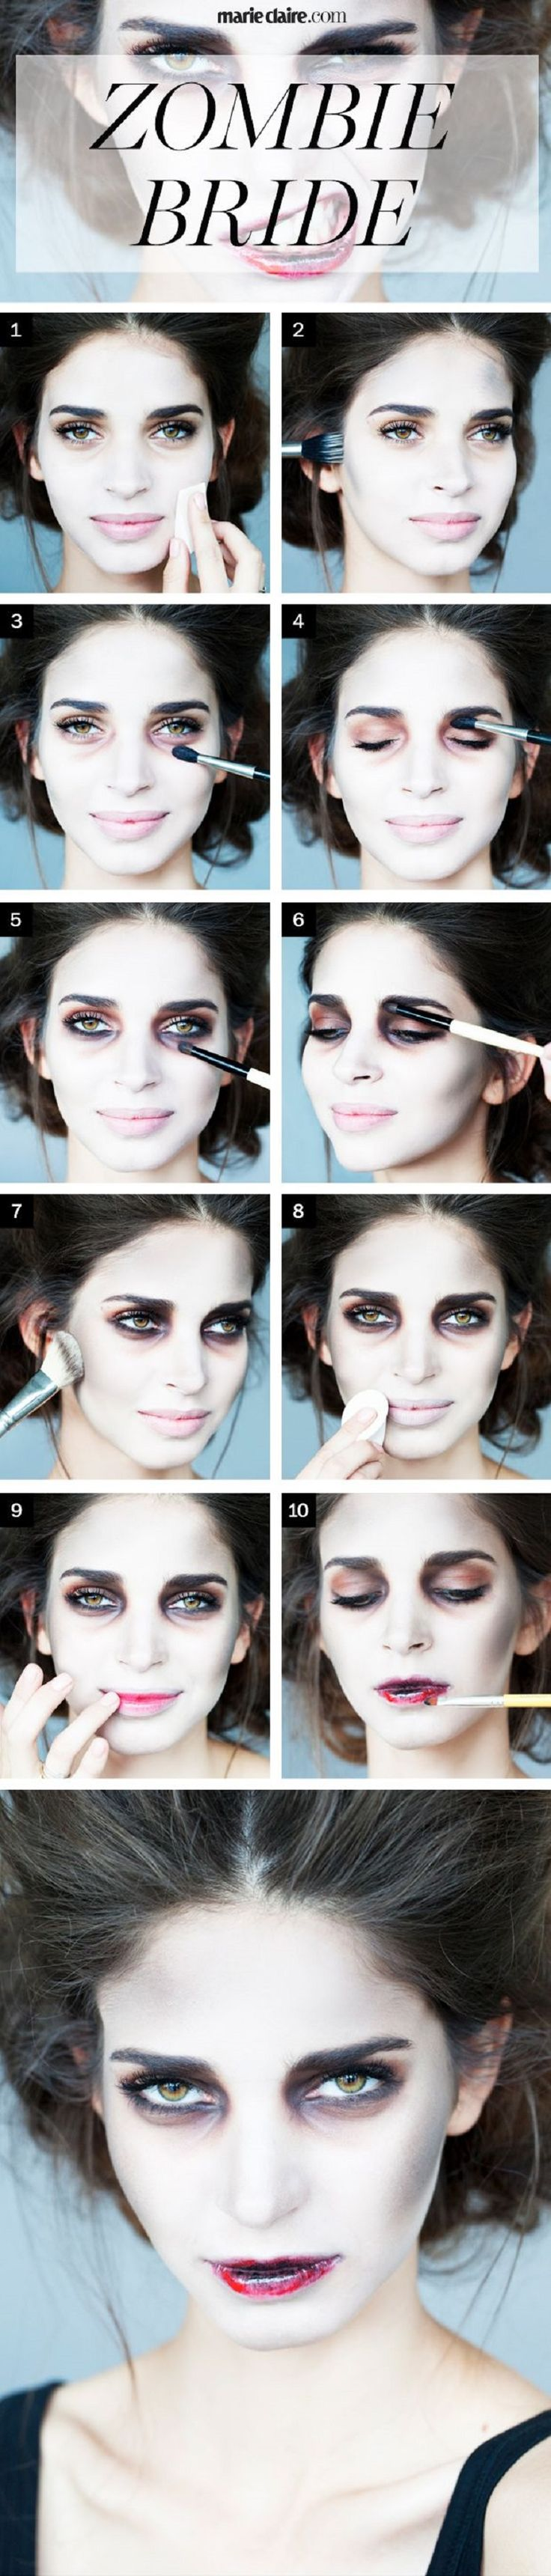 12 Best DIY Halloween Makeup Tutorials - GleamItUp